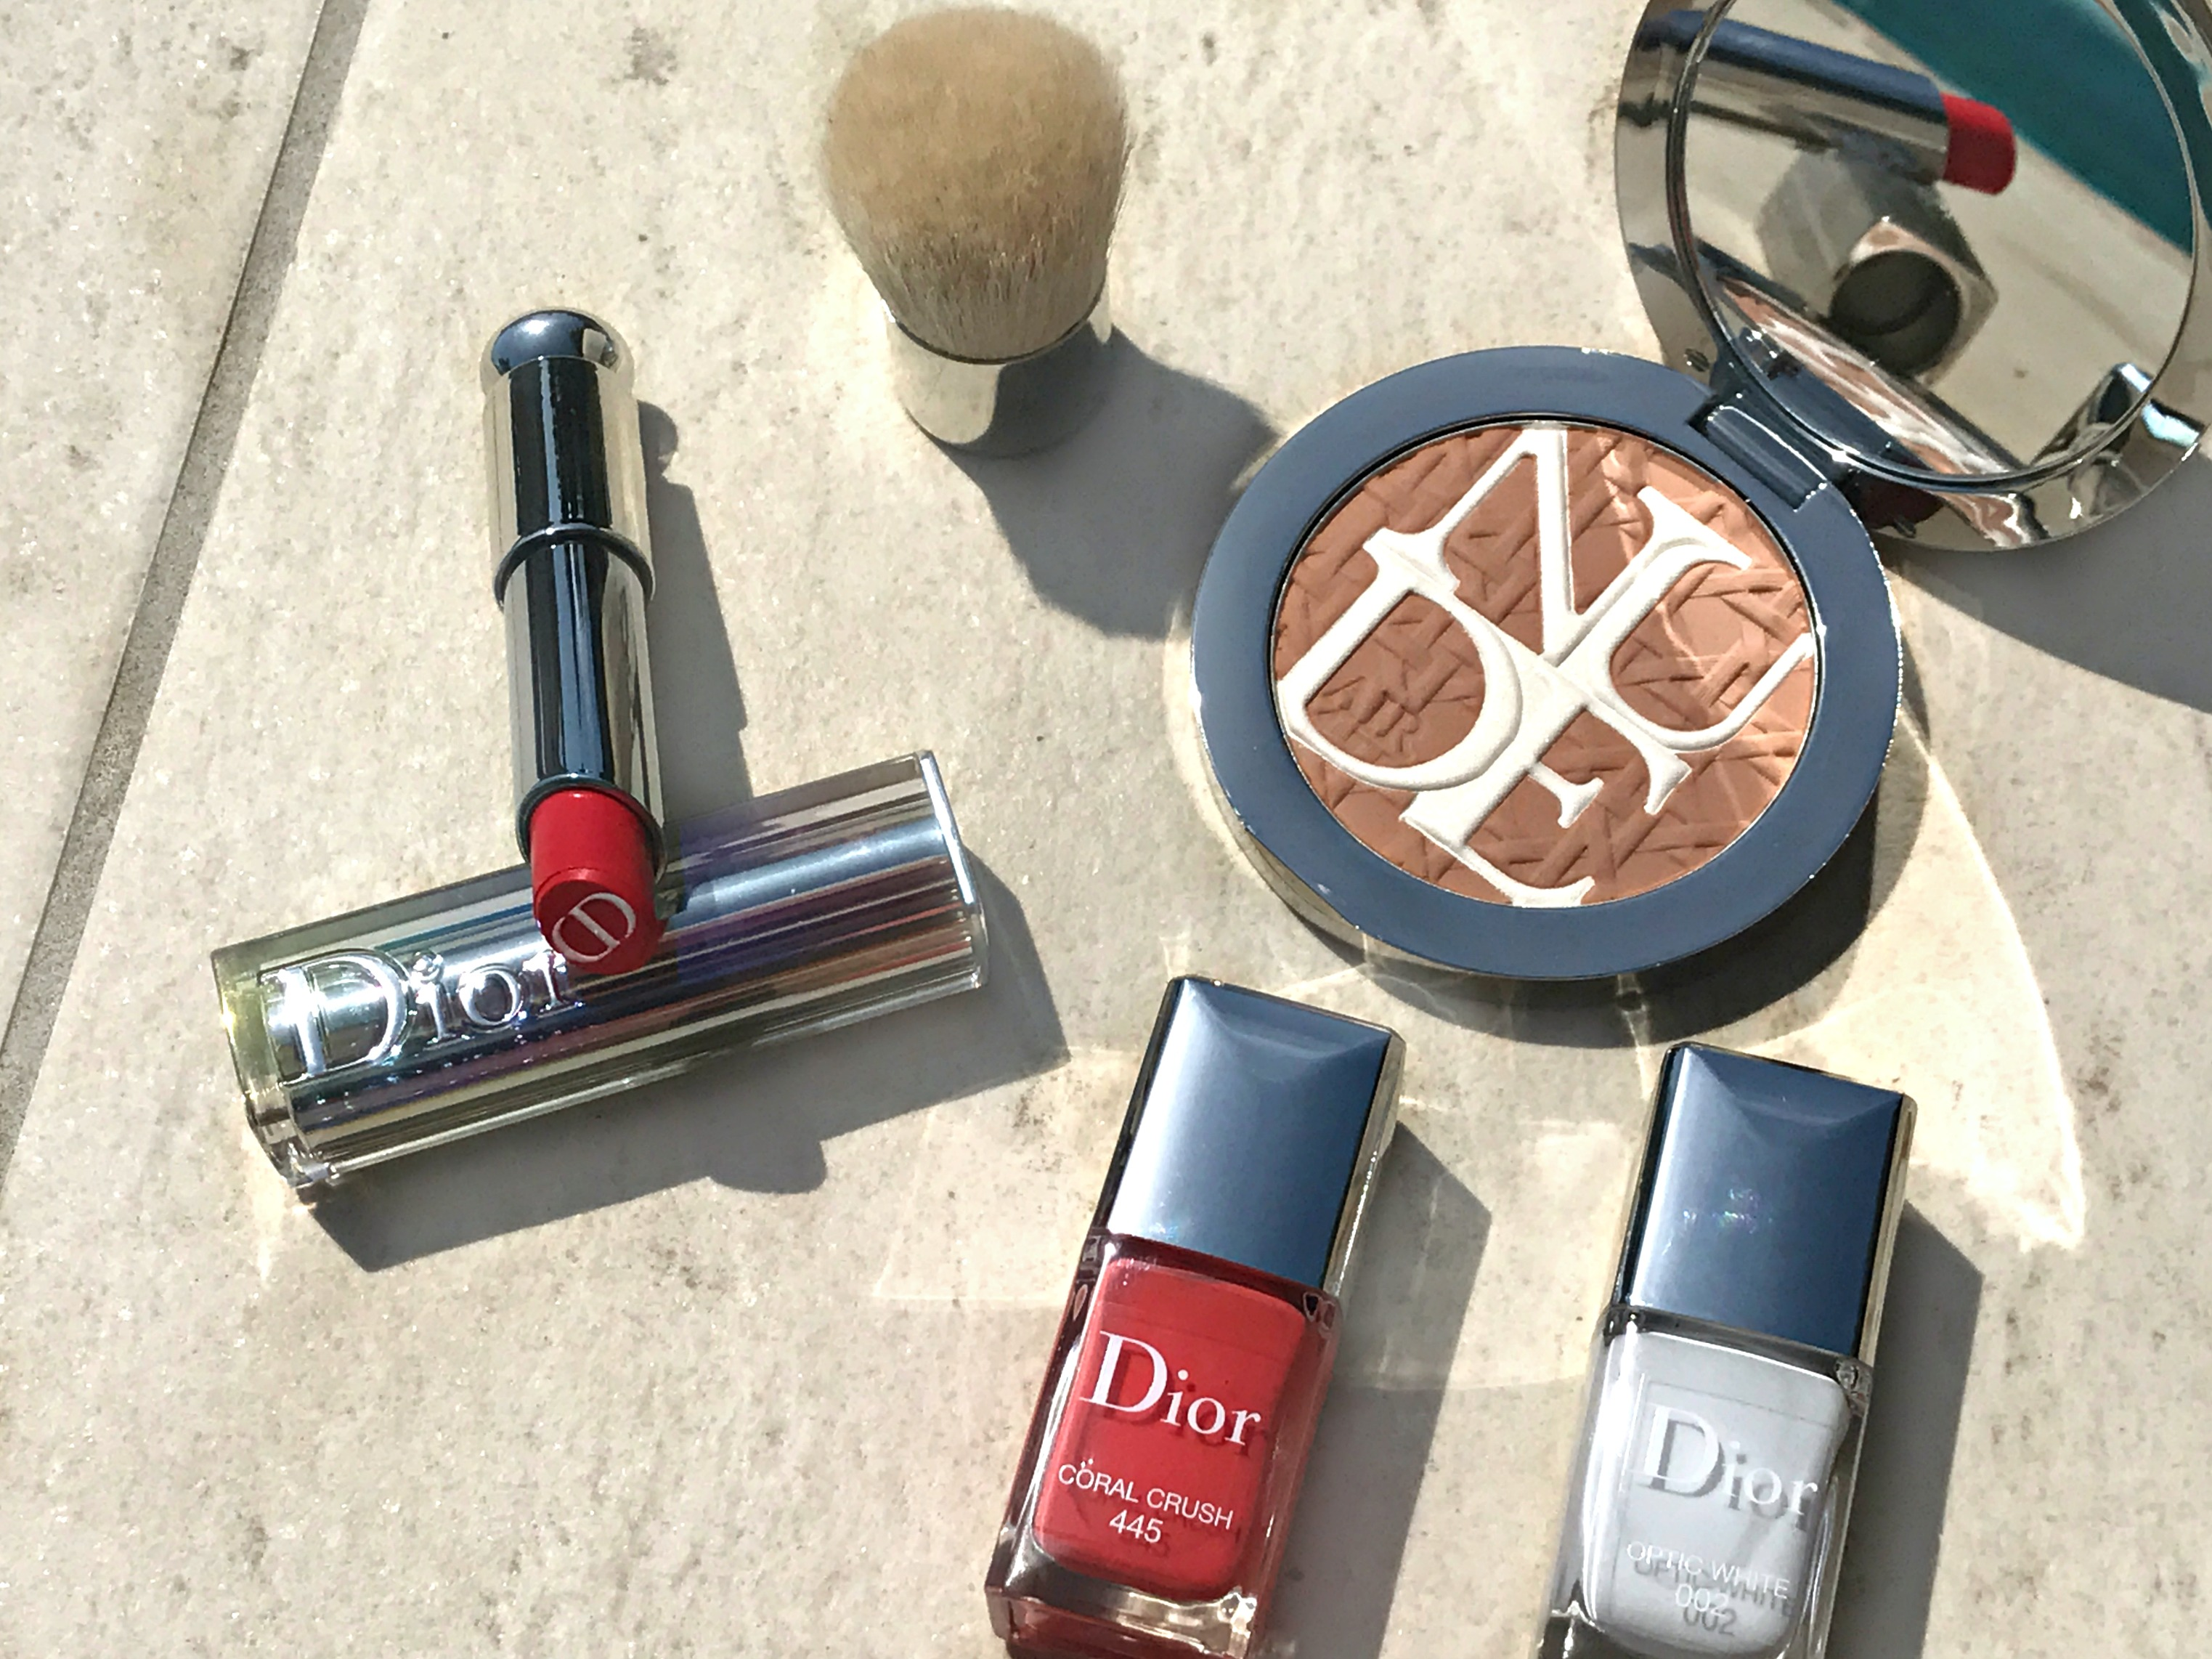 Novità make-up 2017 Dior, nuovità dior estate 2017, elisa bellino, theladycracy.it, fashion blog italia 2017, fashion blog, fashion blogger 2017, fashion blogger italiane 2017, blogger moda 2017, blog moda 2017, blogger moda più seguite 2017, tendenze make-up estate 2017, j'adore inJoy,